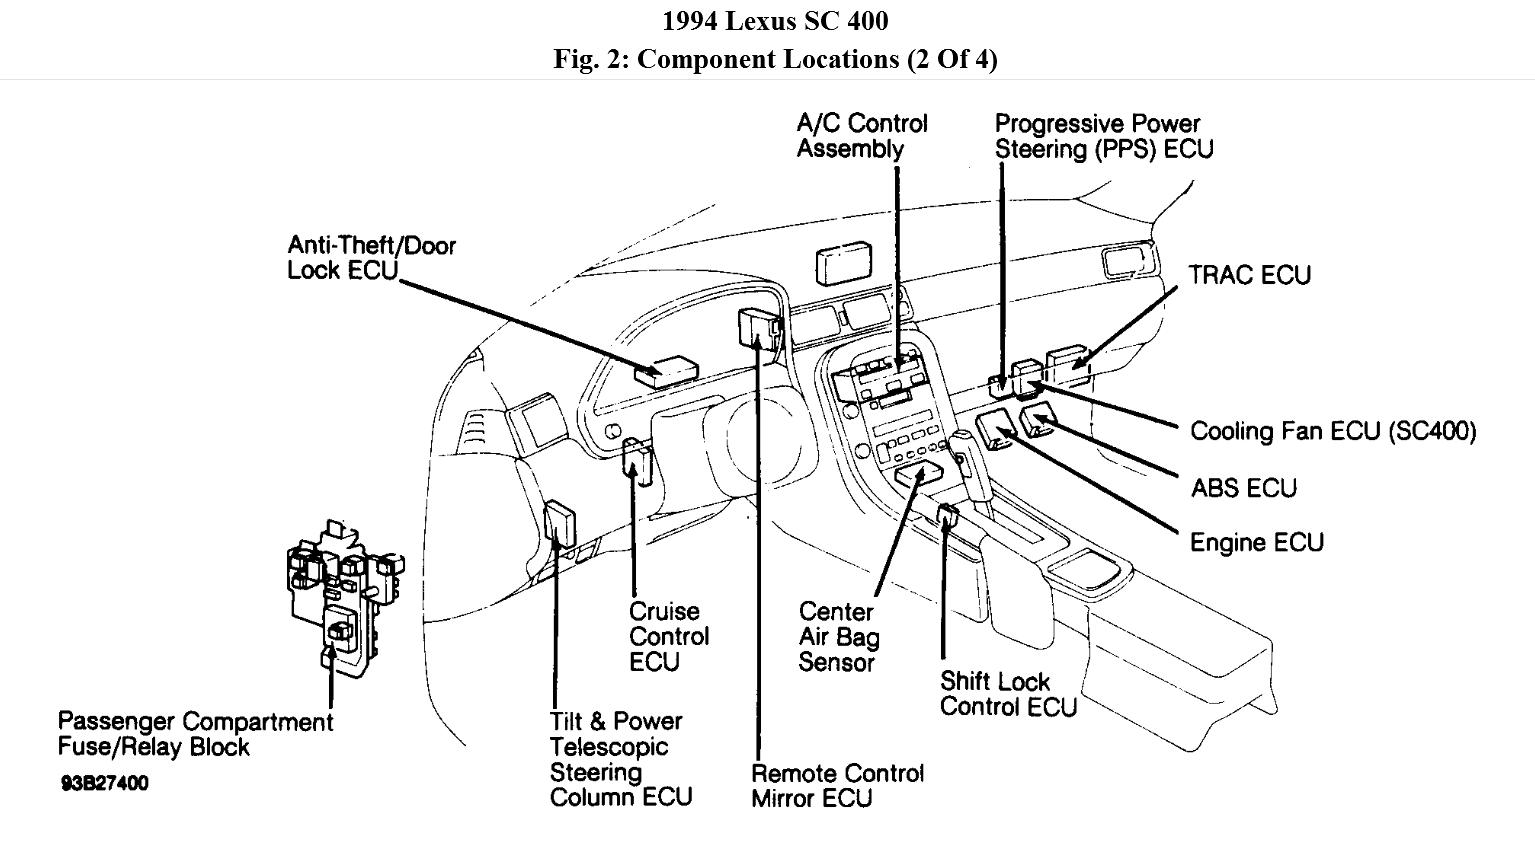 hight resolution of sc400 ecu wiring diagram wiring diagram forward sc400 ecu wiring diagram